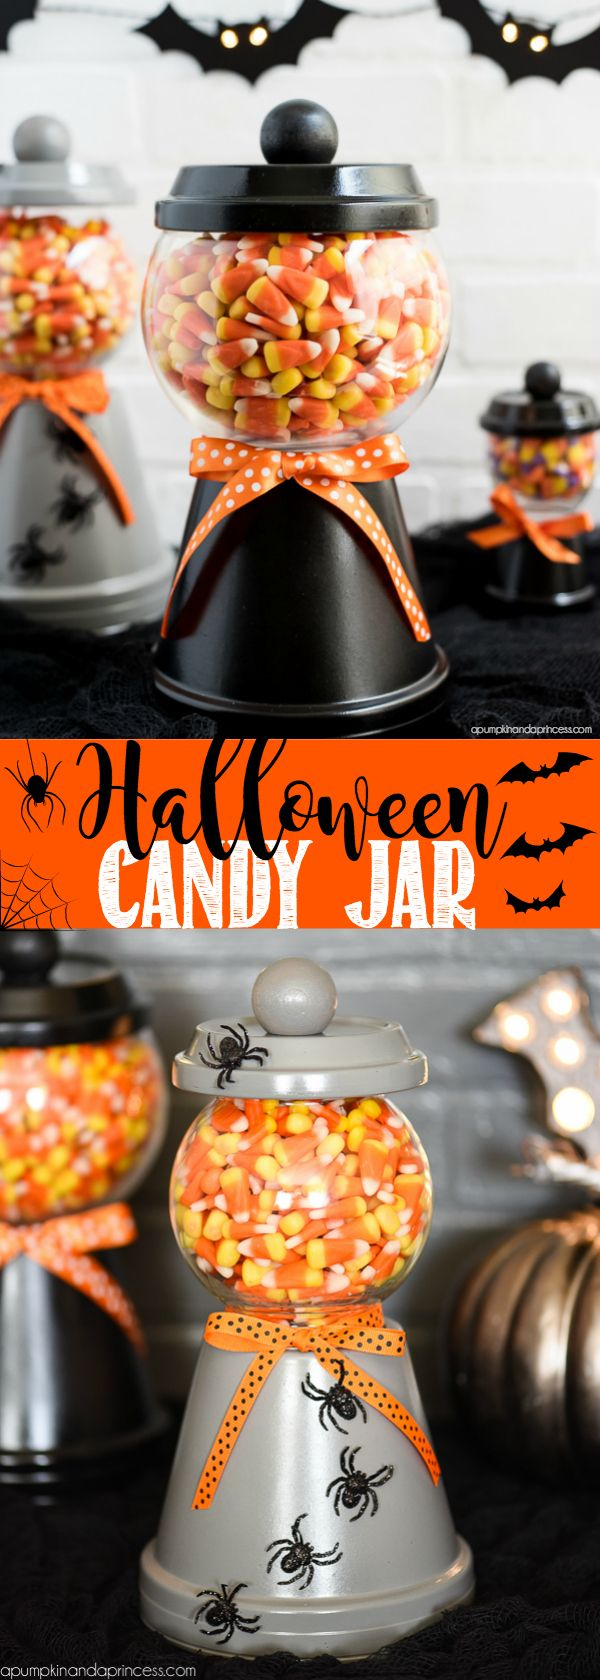 how to make a halloween candy jar made out of a terra cotta pot saucer a glass bowl and wooden knob perfect for decorating and displaying your favorite